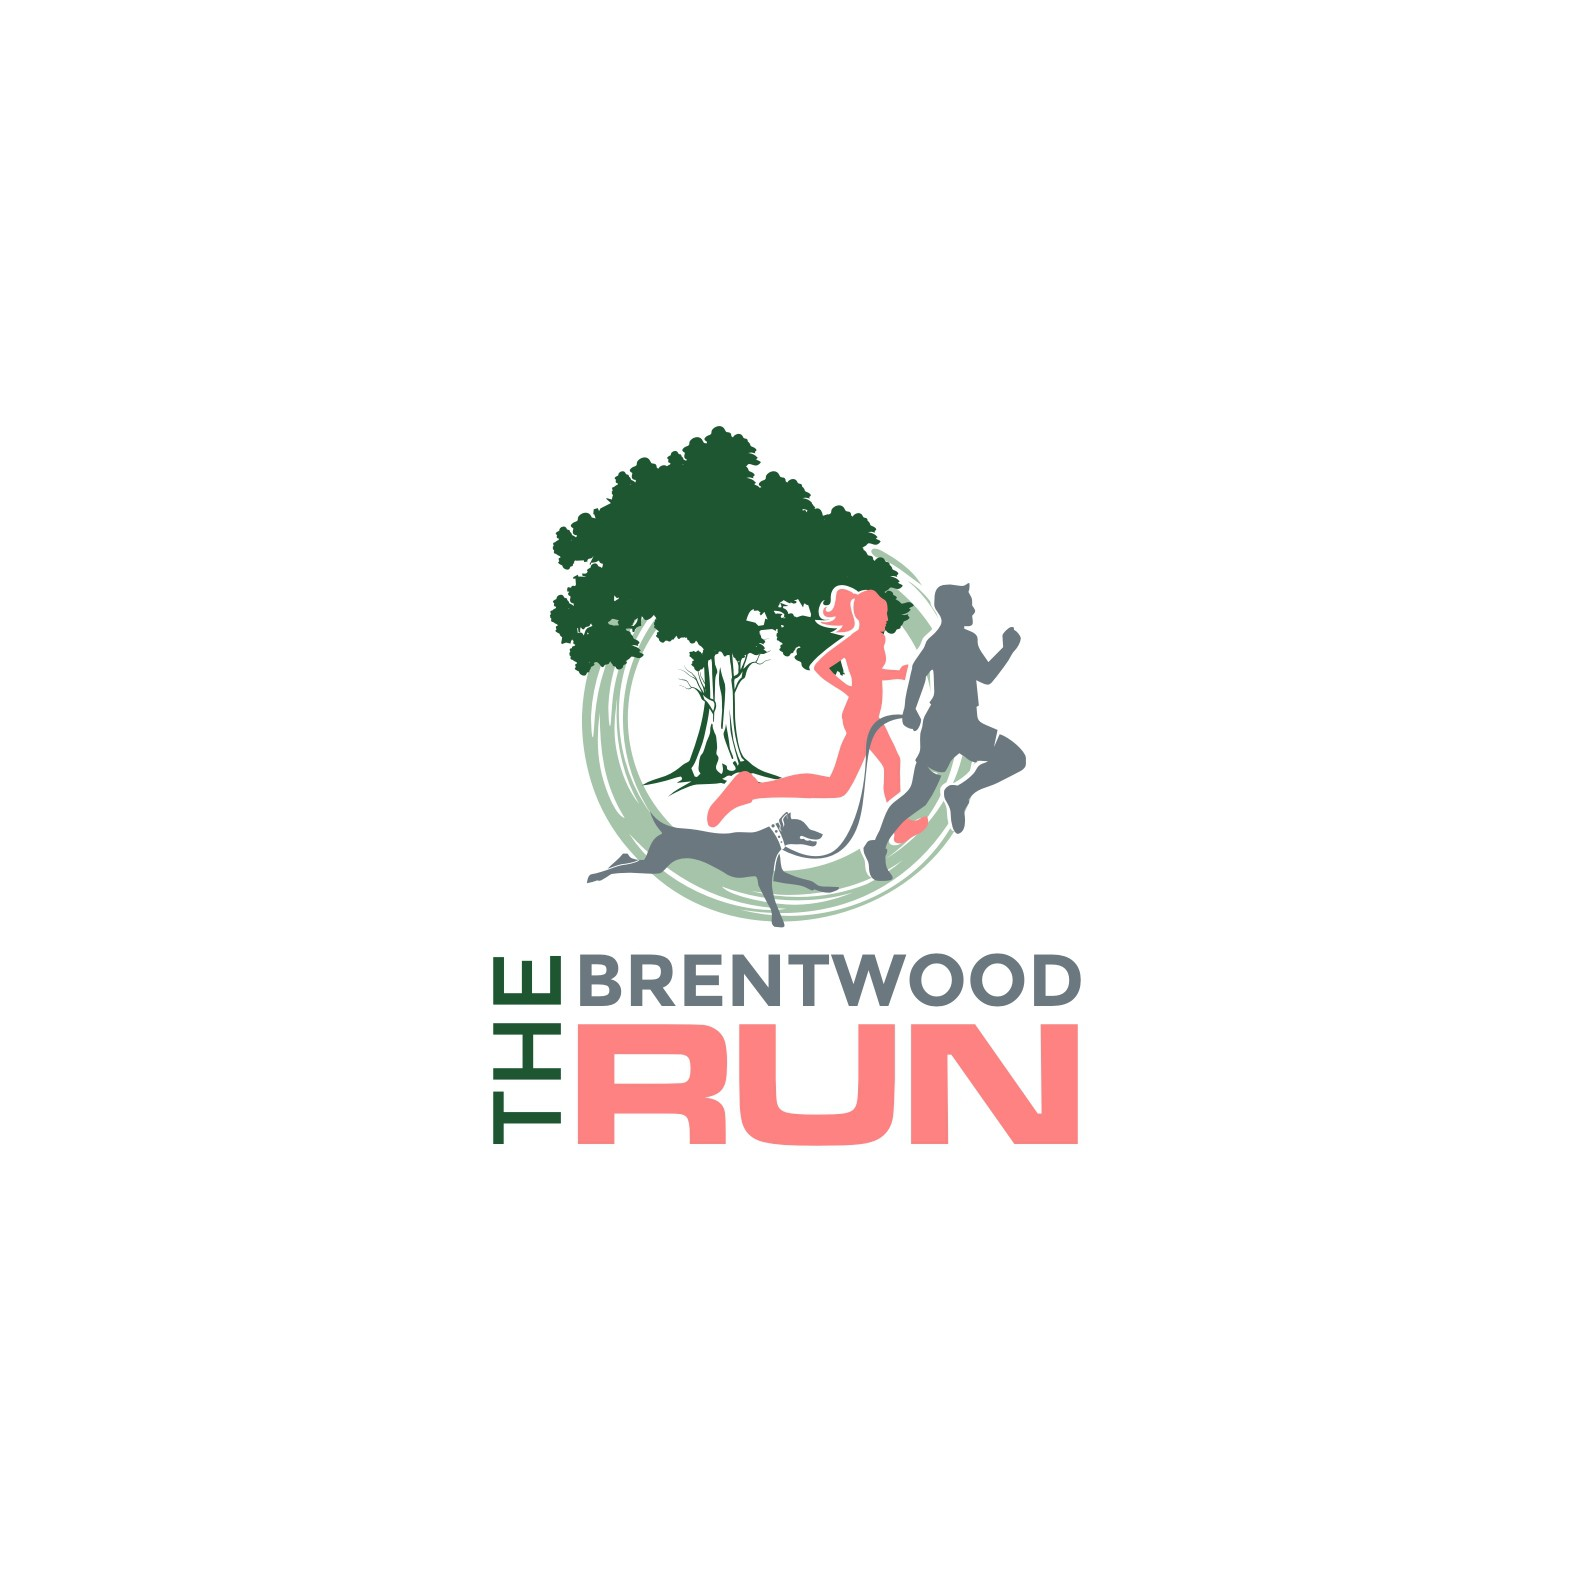 Design a logo for The Brentwood Run 10K!